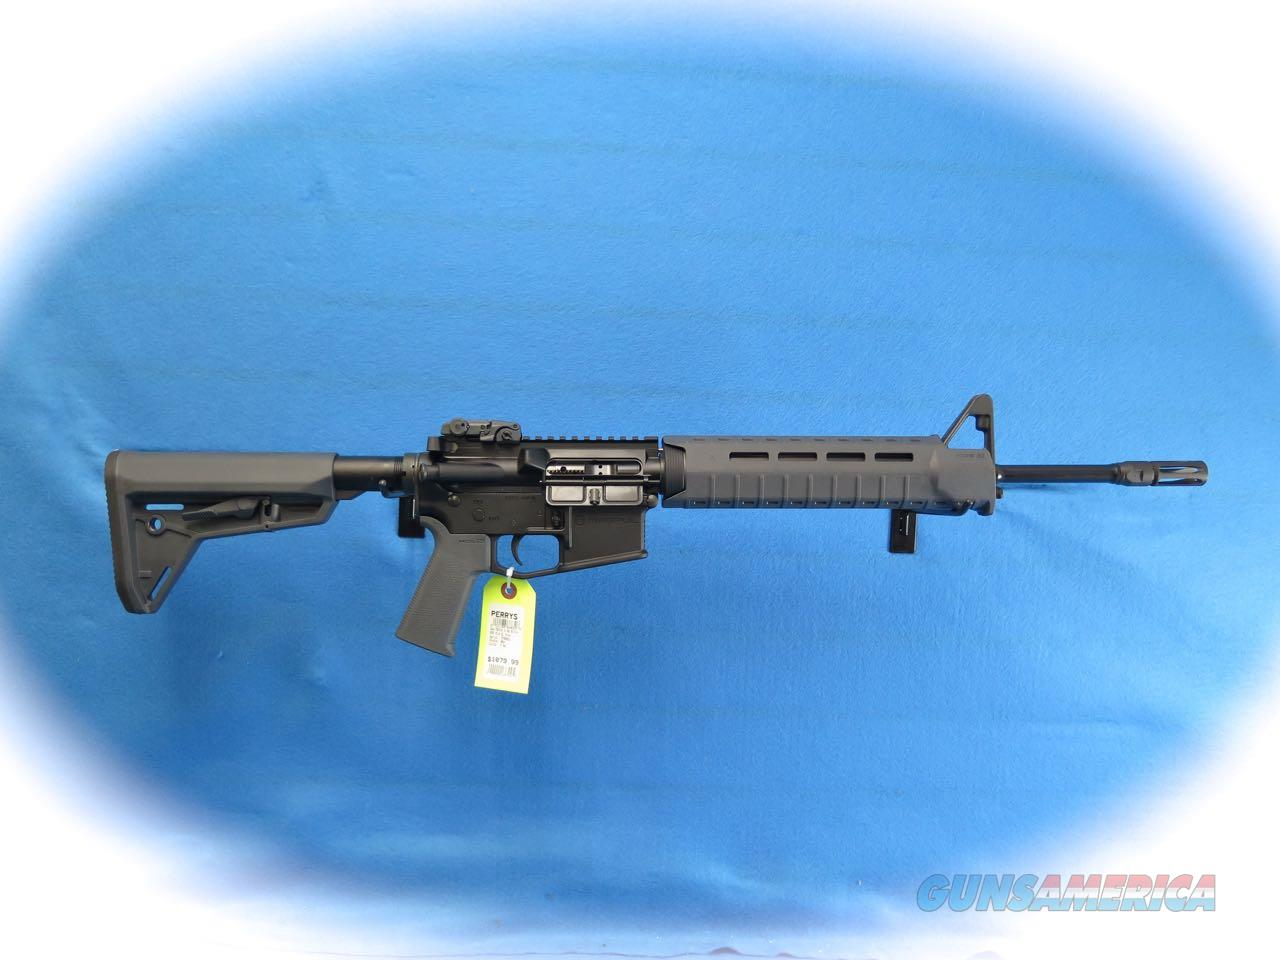 Smith & Wesson M&P15 MOE Stealth Grey 5.56MM Semi Auto Rifle Model 11553 **New**  Guns > Rifles > Smith & Wesson Rifles > M&P